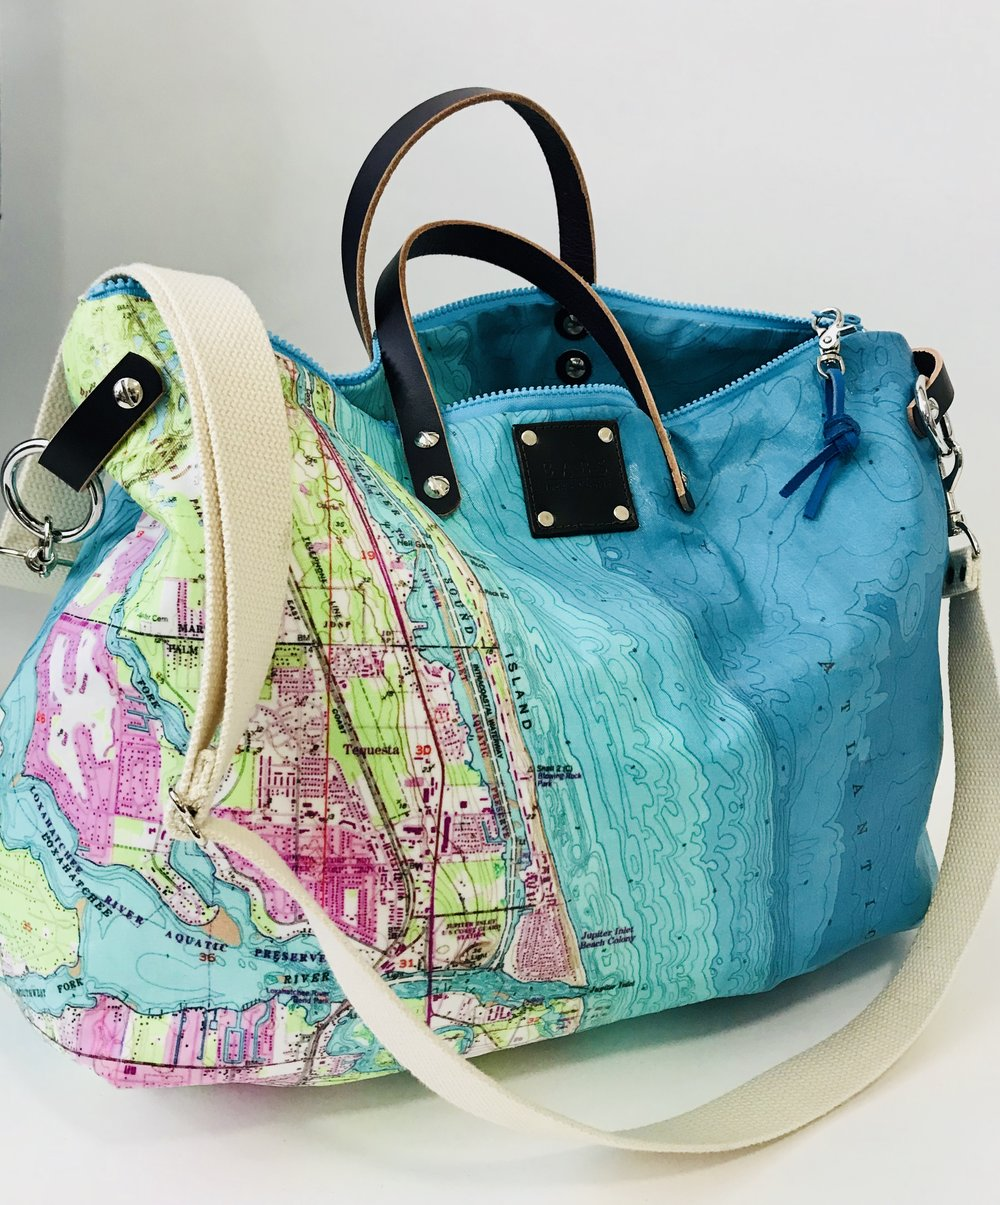 Coastal & City Cruisers - Set your course.....These bags are made from nautical charts and topographic maps printed on treated cotton twill so they are water and dirt resistant.  The collection includes totes, clutches and cross body bags. Contact me for more information about available charts and custom designs.